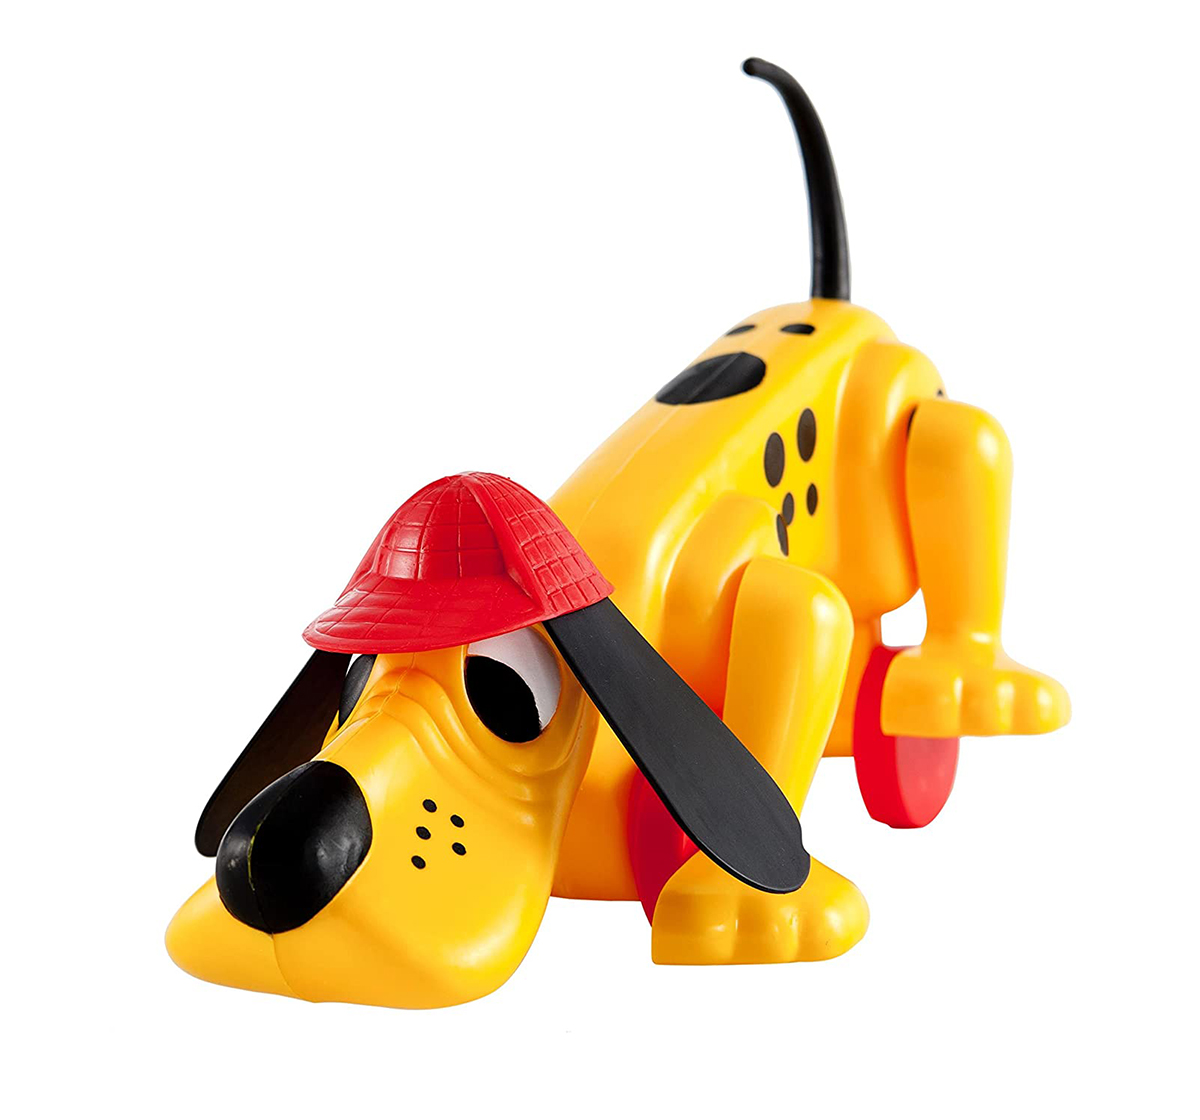 Giggles | Giggles Digger The Dog Activity Toys for Kids age 12M+ (Yellow)